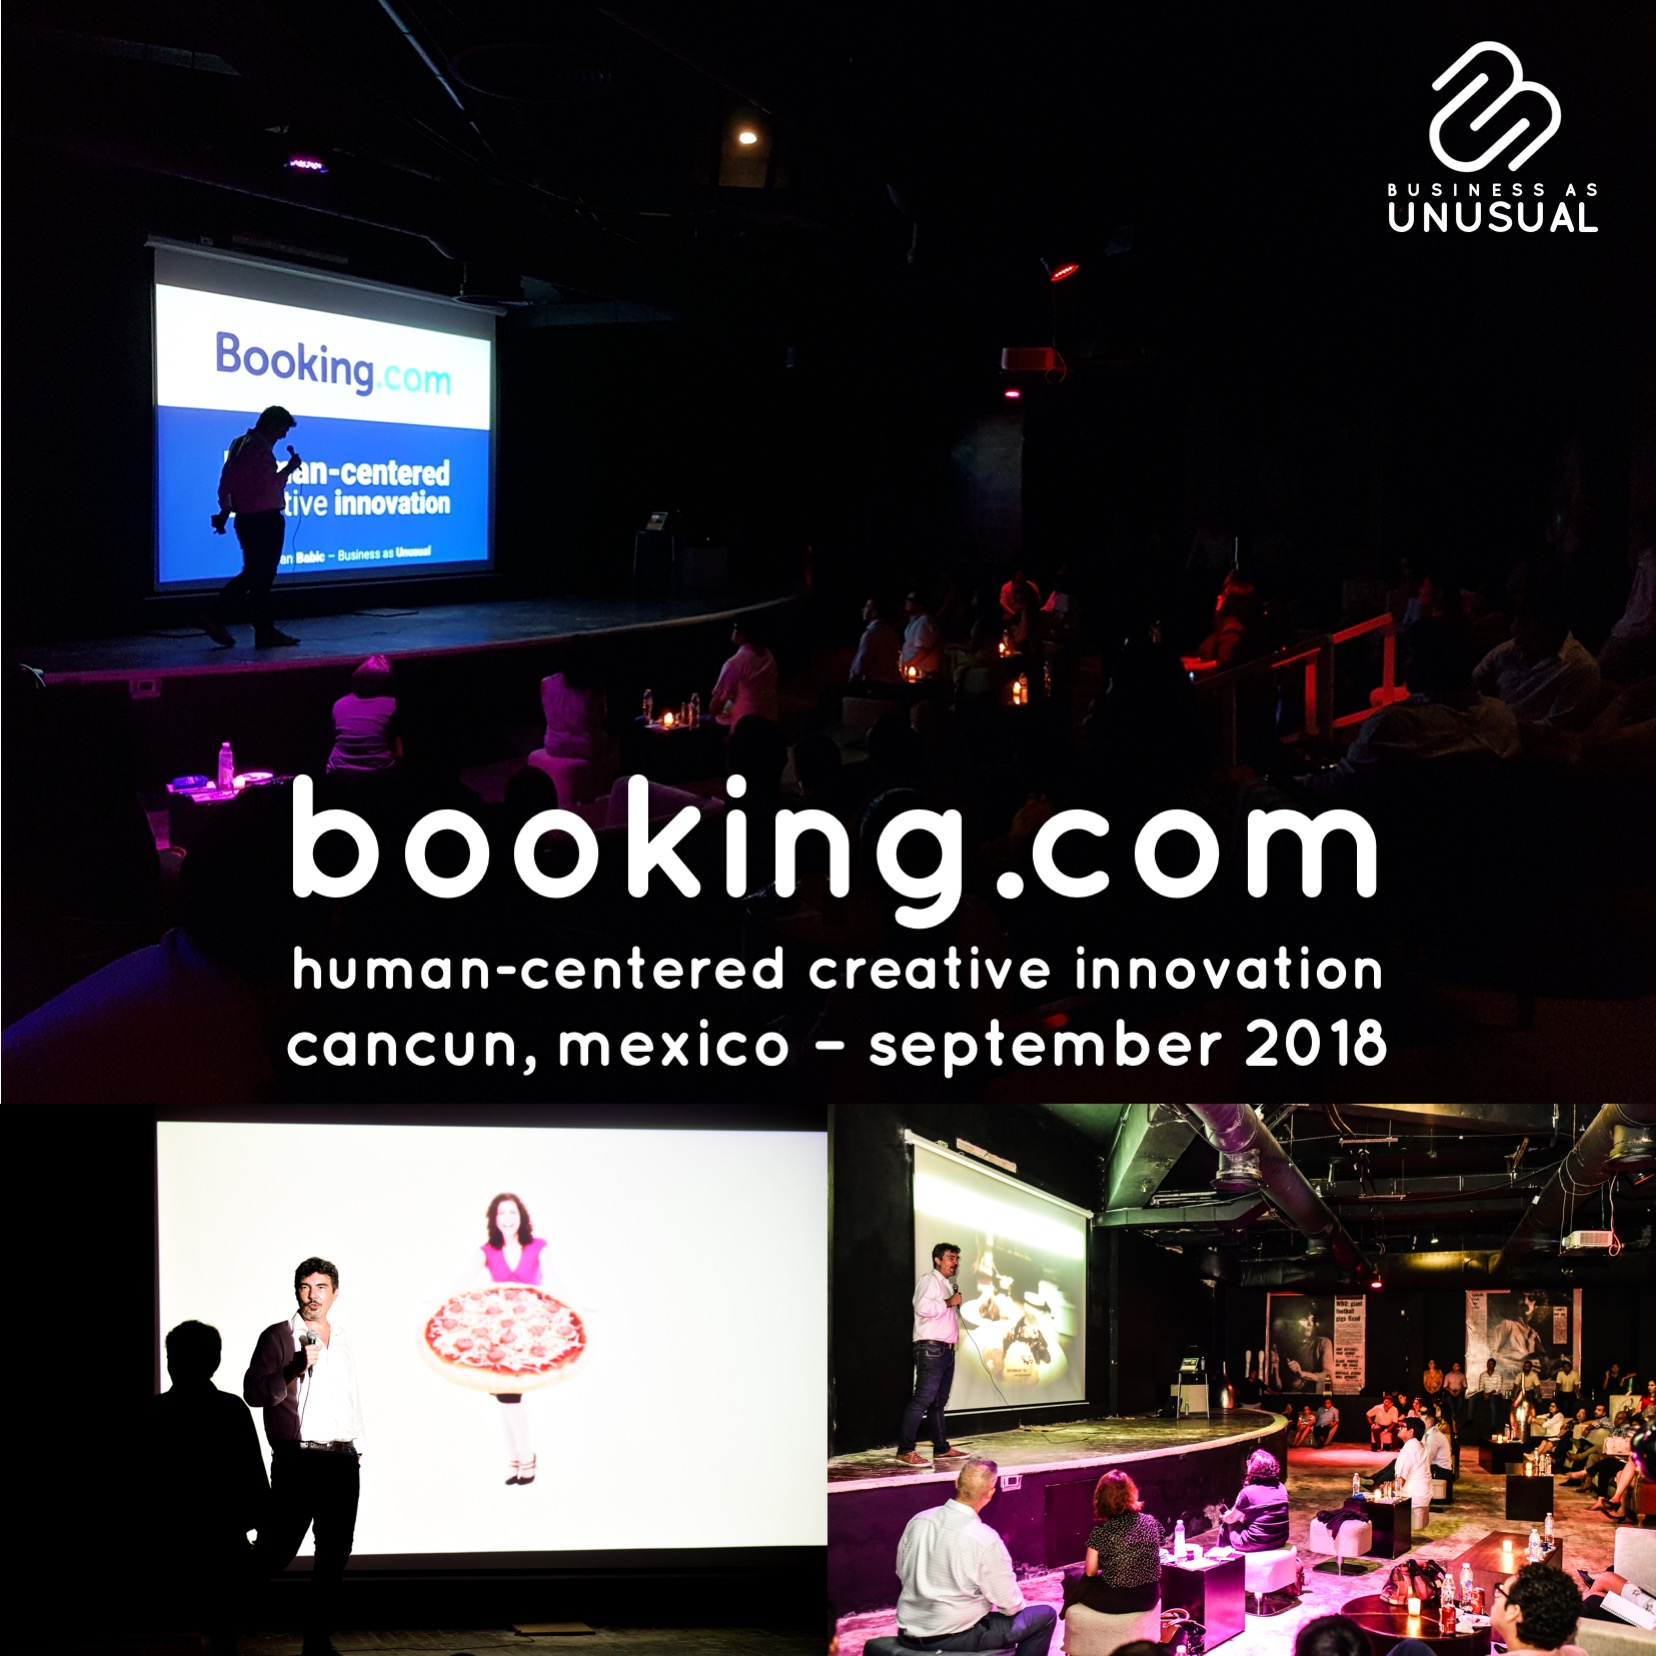 Booking.com - Human-Centered Creative Innovation - Cancun Mexico September 2018